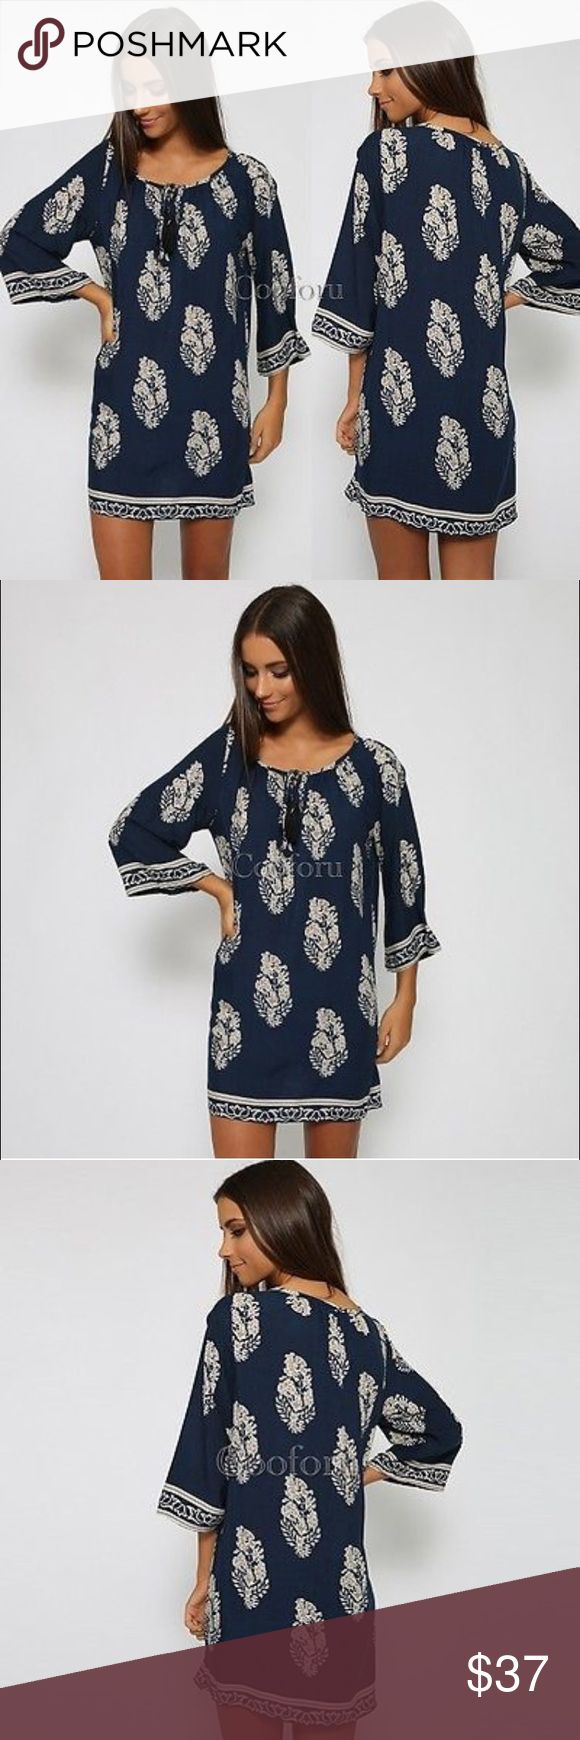 "⚜""Coco"" ll Bohemian Summer Mini Dress ⚜ This navy bohemian dress is sure to flatter this summer. Light weight fabric is perfect for a hot day. Neck has two small strings for added detail. Up close photo shows floral pattern best. Low stock! 💕 Dresses Mini"